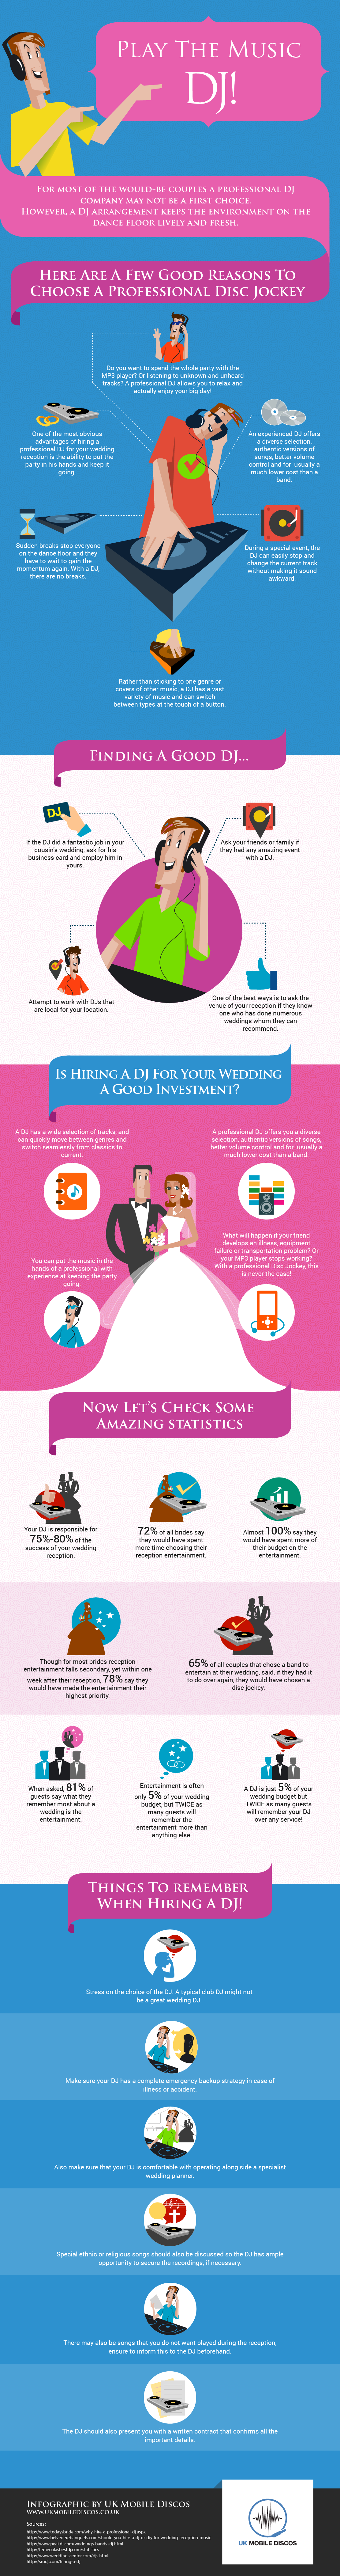 Hiring A Wedding DJ For Your Wedding Infographic